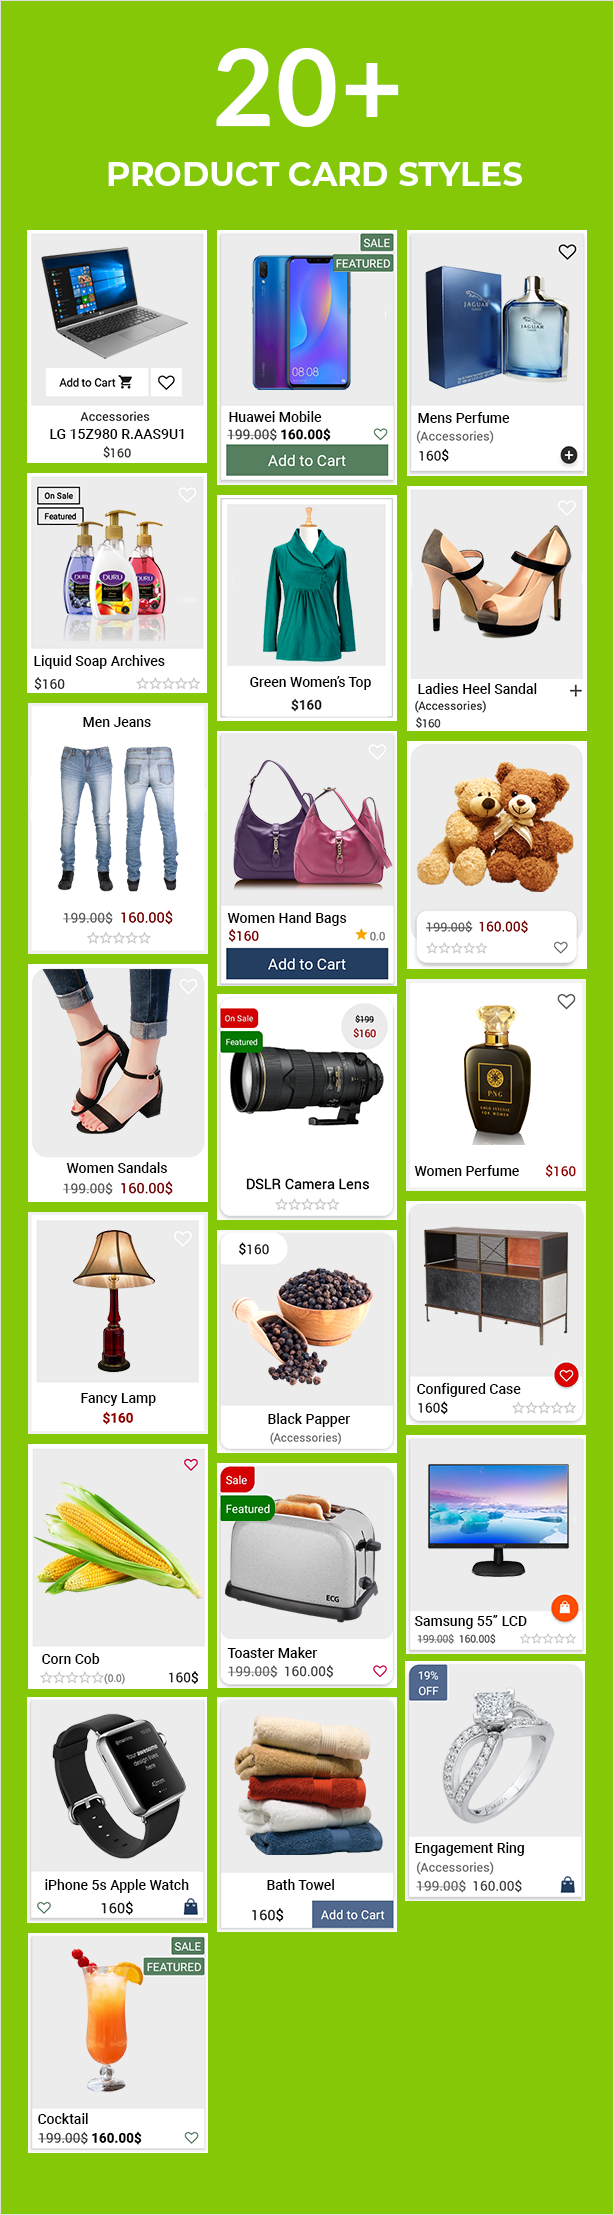 Android Ecommerce - Universal Android Ecommerce / Store Full Mobile App with Laravel CMS - 11